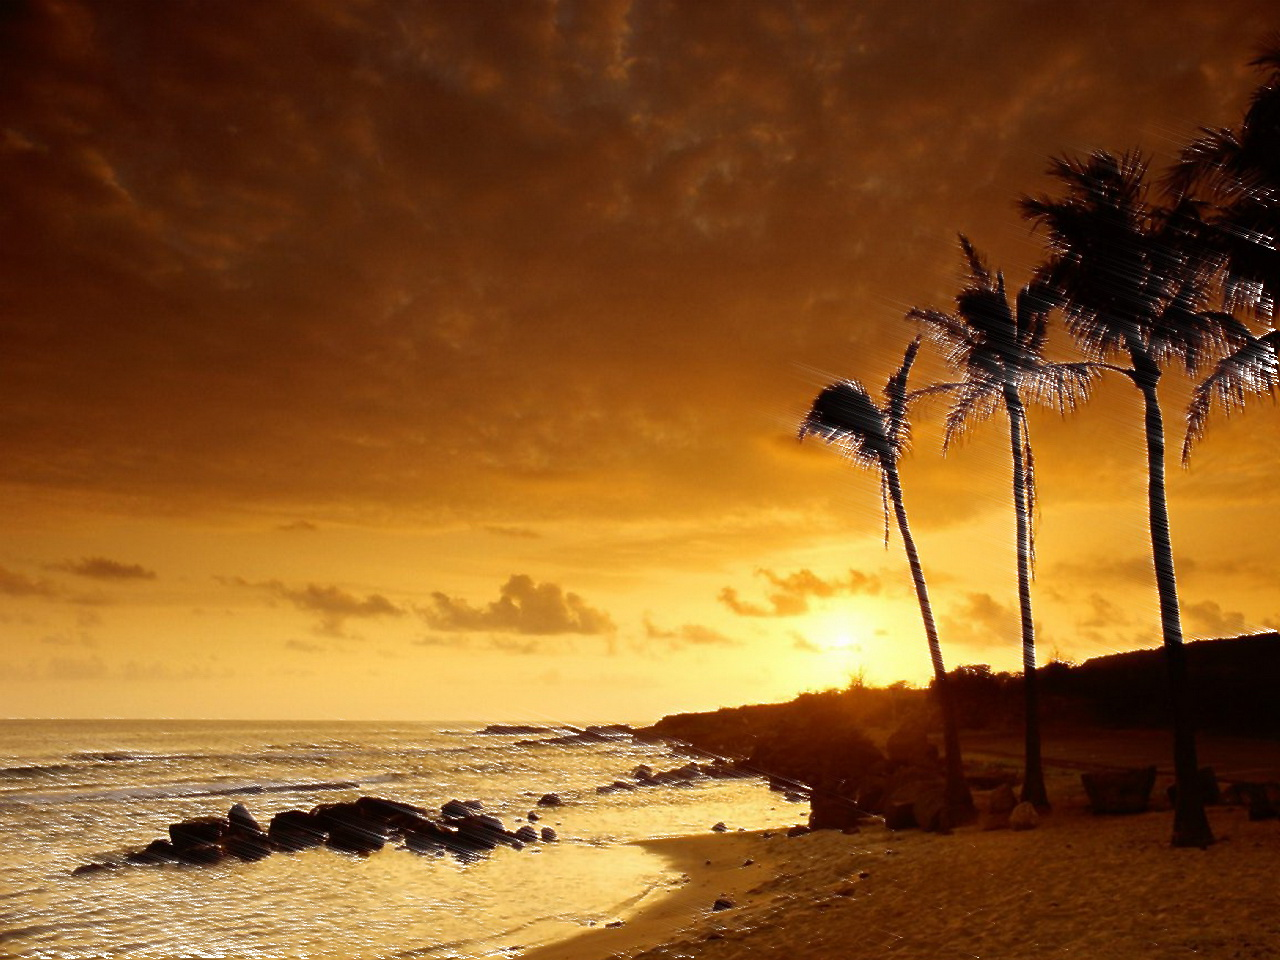 RSS Wallpapers: Beach And Night HD Wallpaper